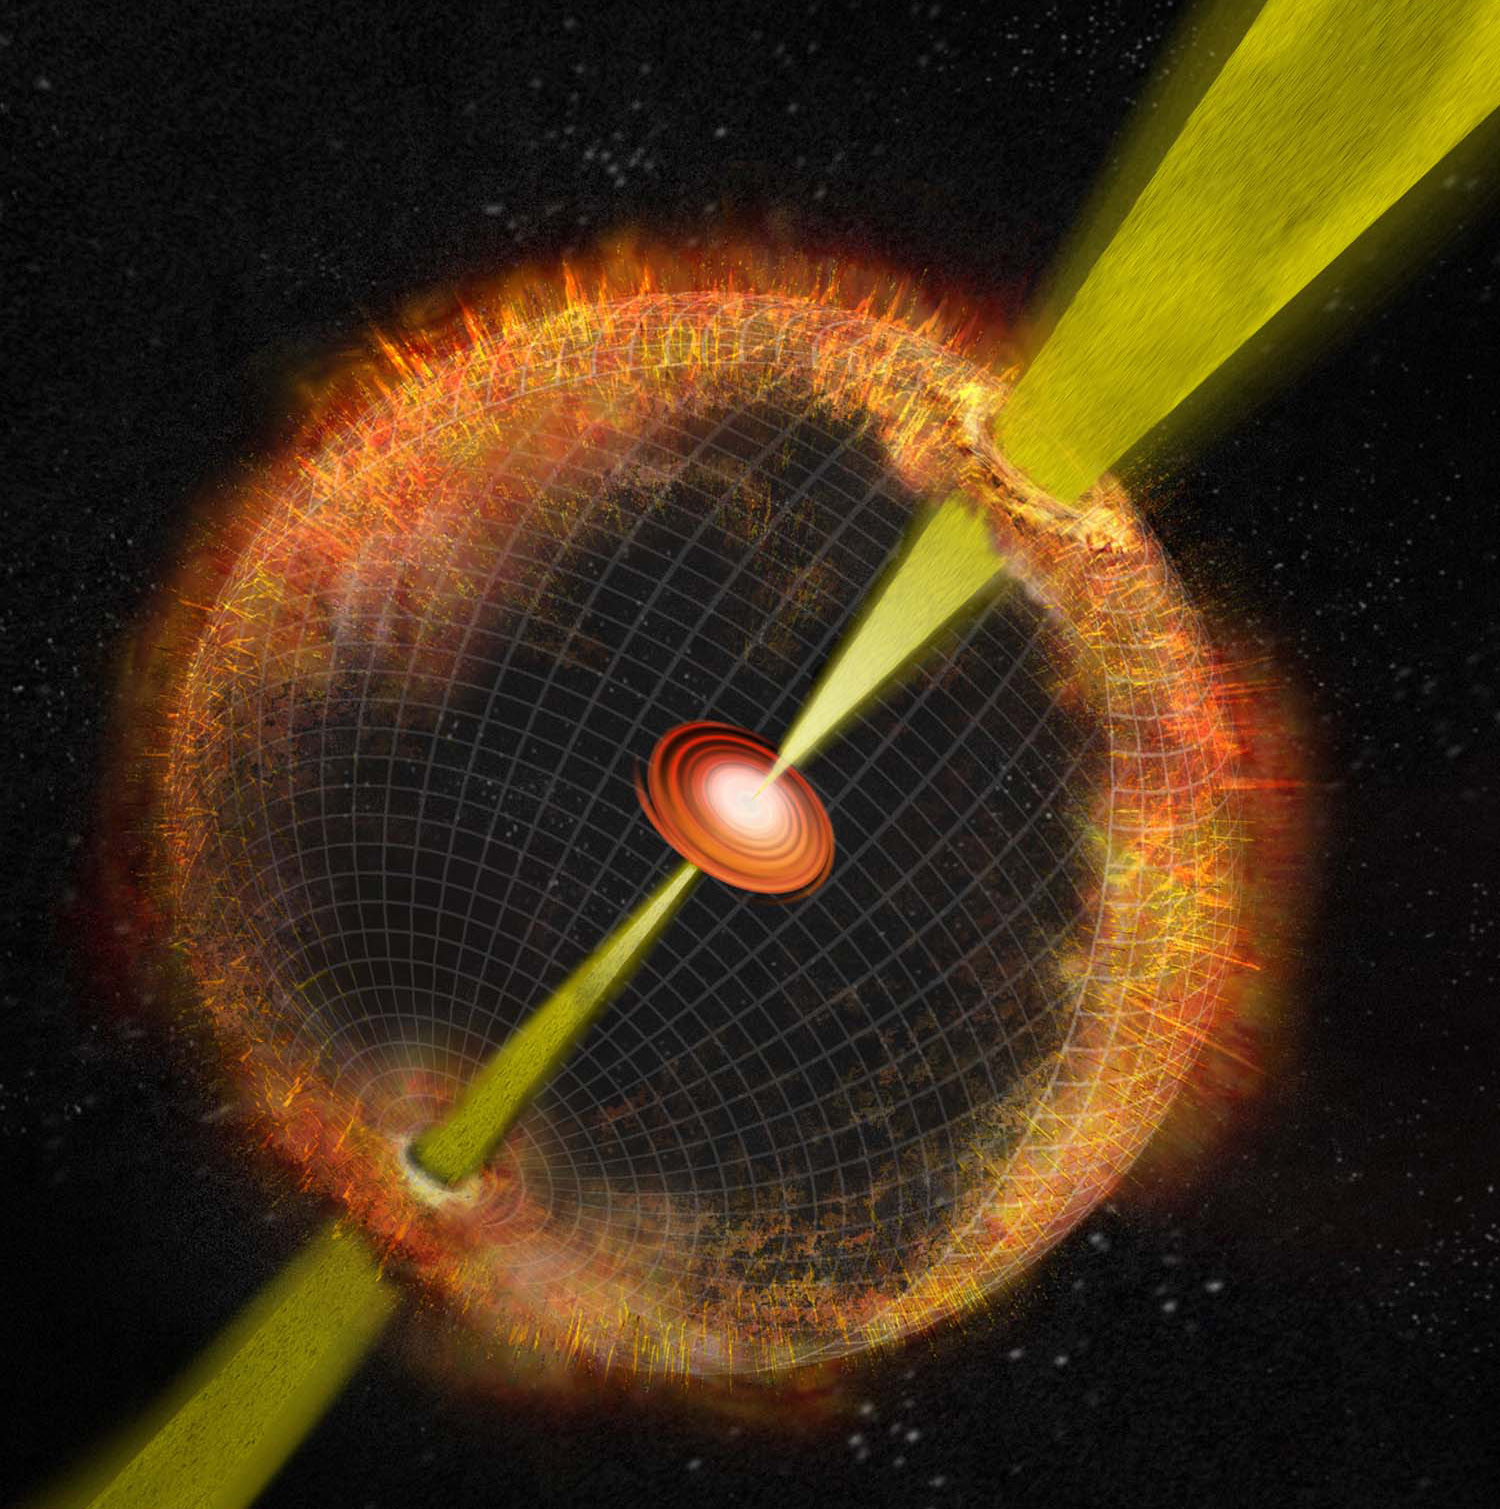 slider-Bill-Saxton-engine-driven-supernova-explosion-with-accretion-disk